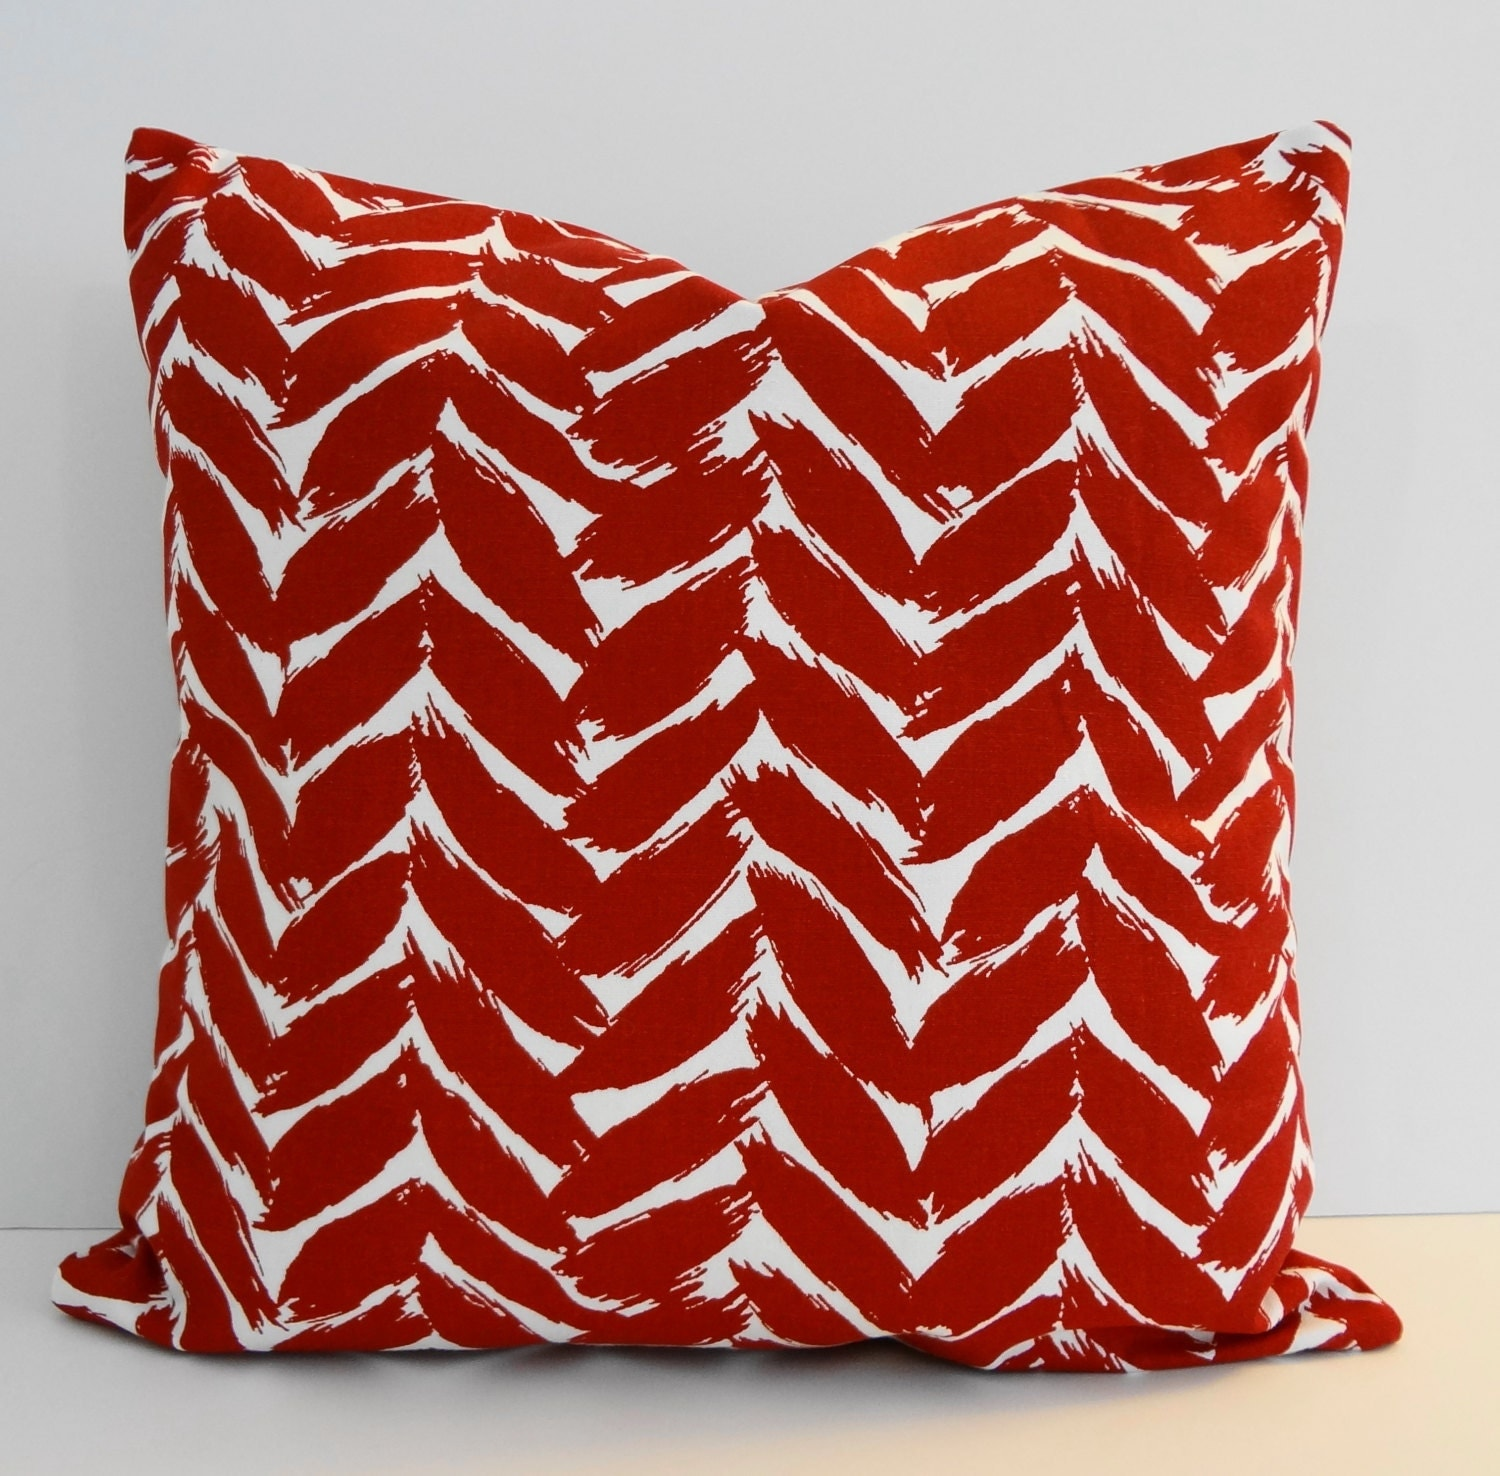 Throw Pillow Cover Fabric : Designer Pillow Cover Covington Fabrics Crimson Throw Pillow